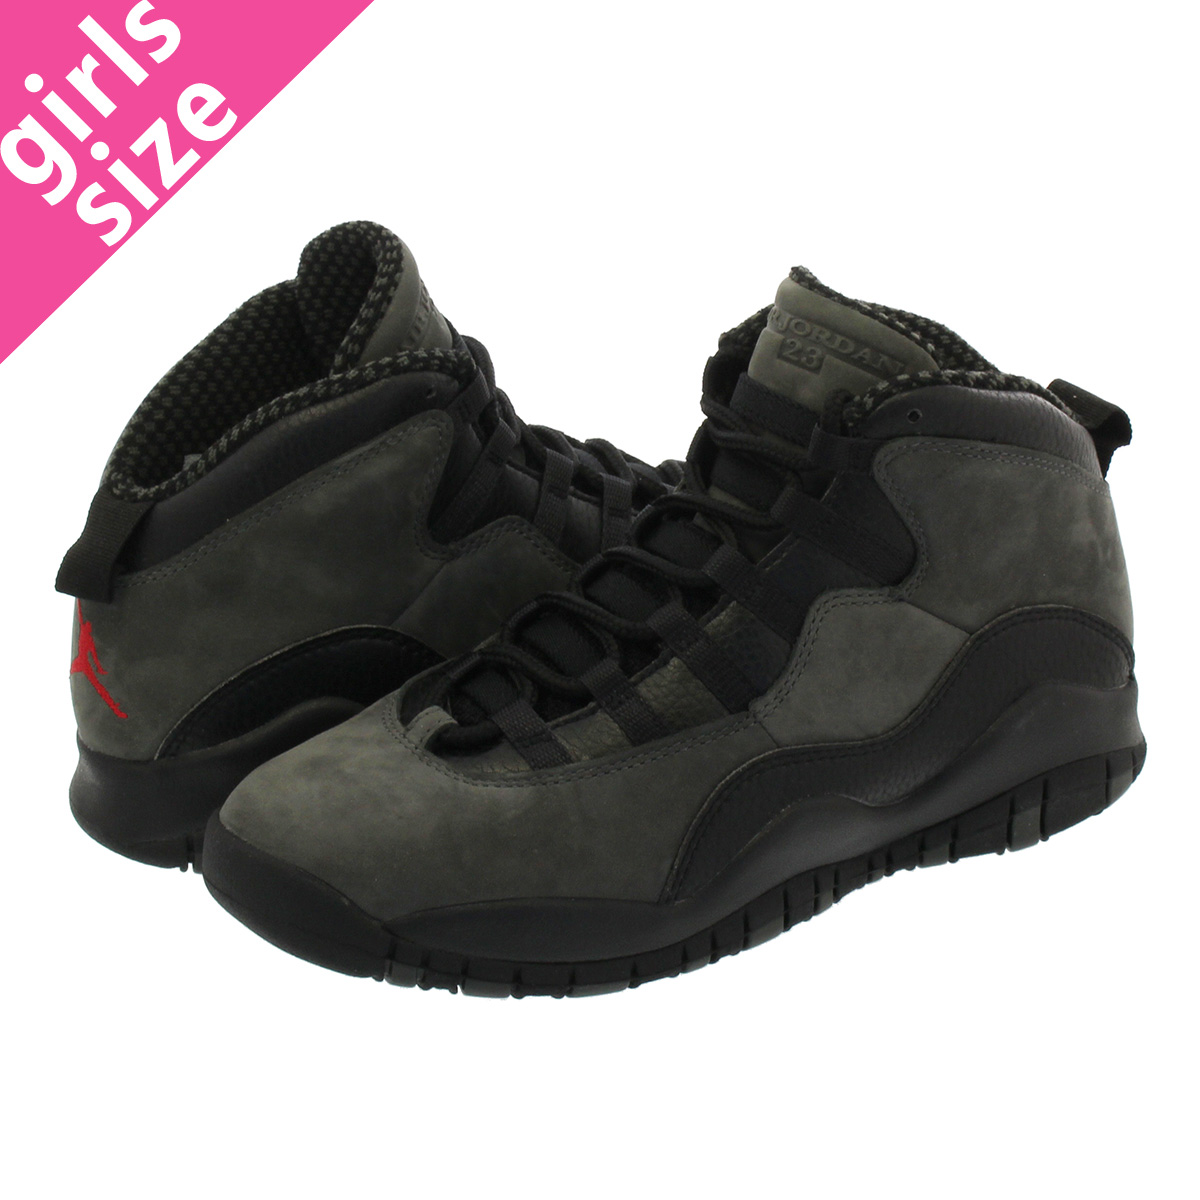 check out 566ea 4314c NIKE AIR JORDAN 10 RETRO BG Nike Air Jordan 10 nostalgic BG DARK SHADOW TRUE  RED BLACK 310,806-002